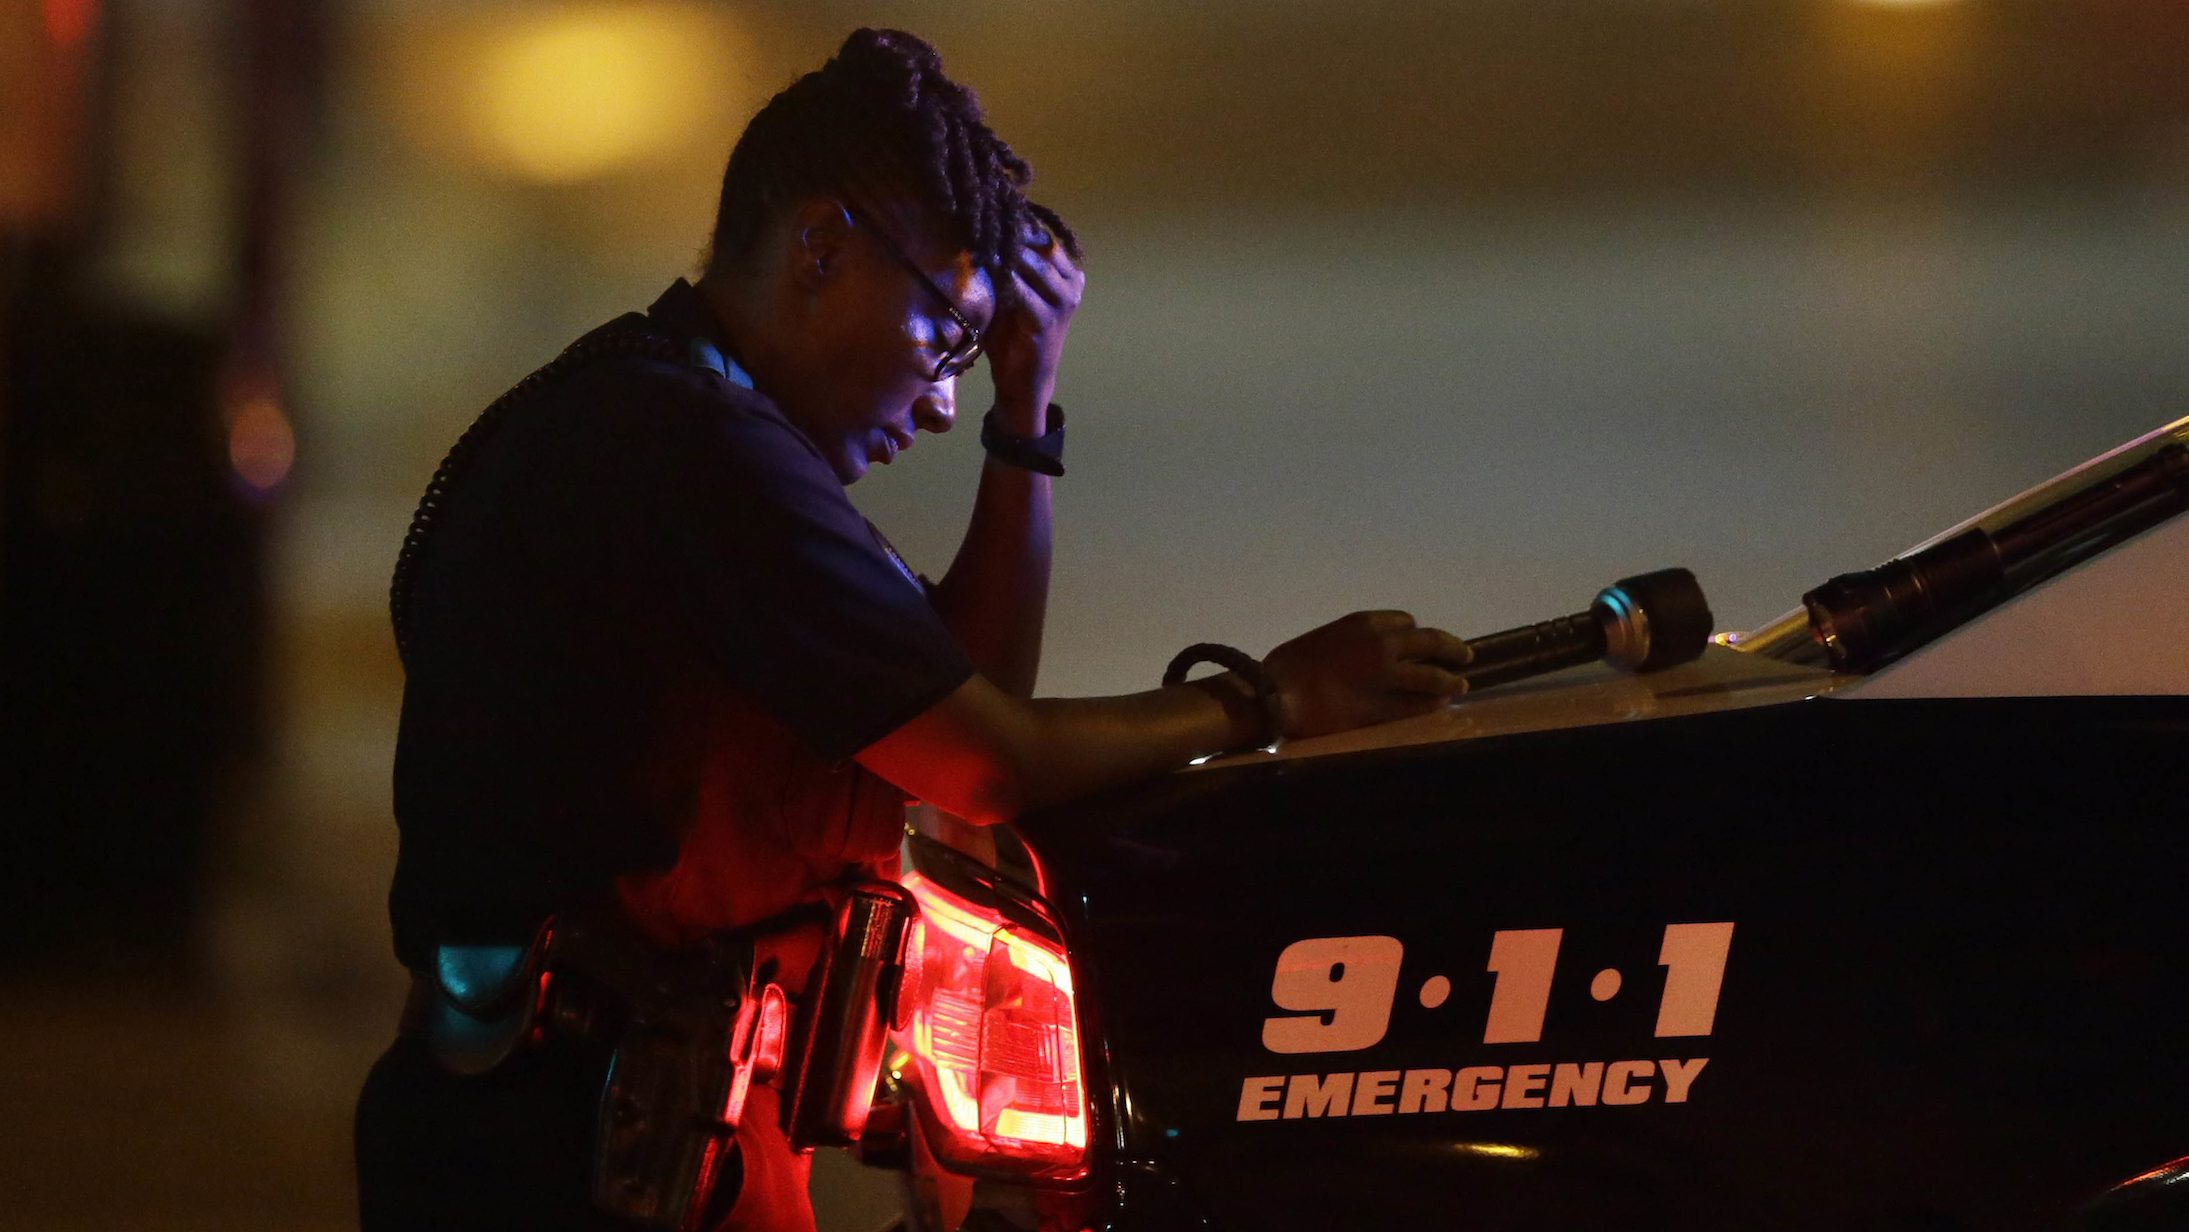 A Dallas police officer, who did not which to be identified, takes a moment as she guards an intersection in the early morning after a shooting in downtown Dallas, Friday, July 8, 2016. At least two snipers opened fire on police officers during protests in Dallas on Thursday night; some of the officers were killed, police said. (AP Photo/LM Otero)